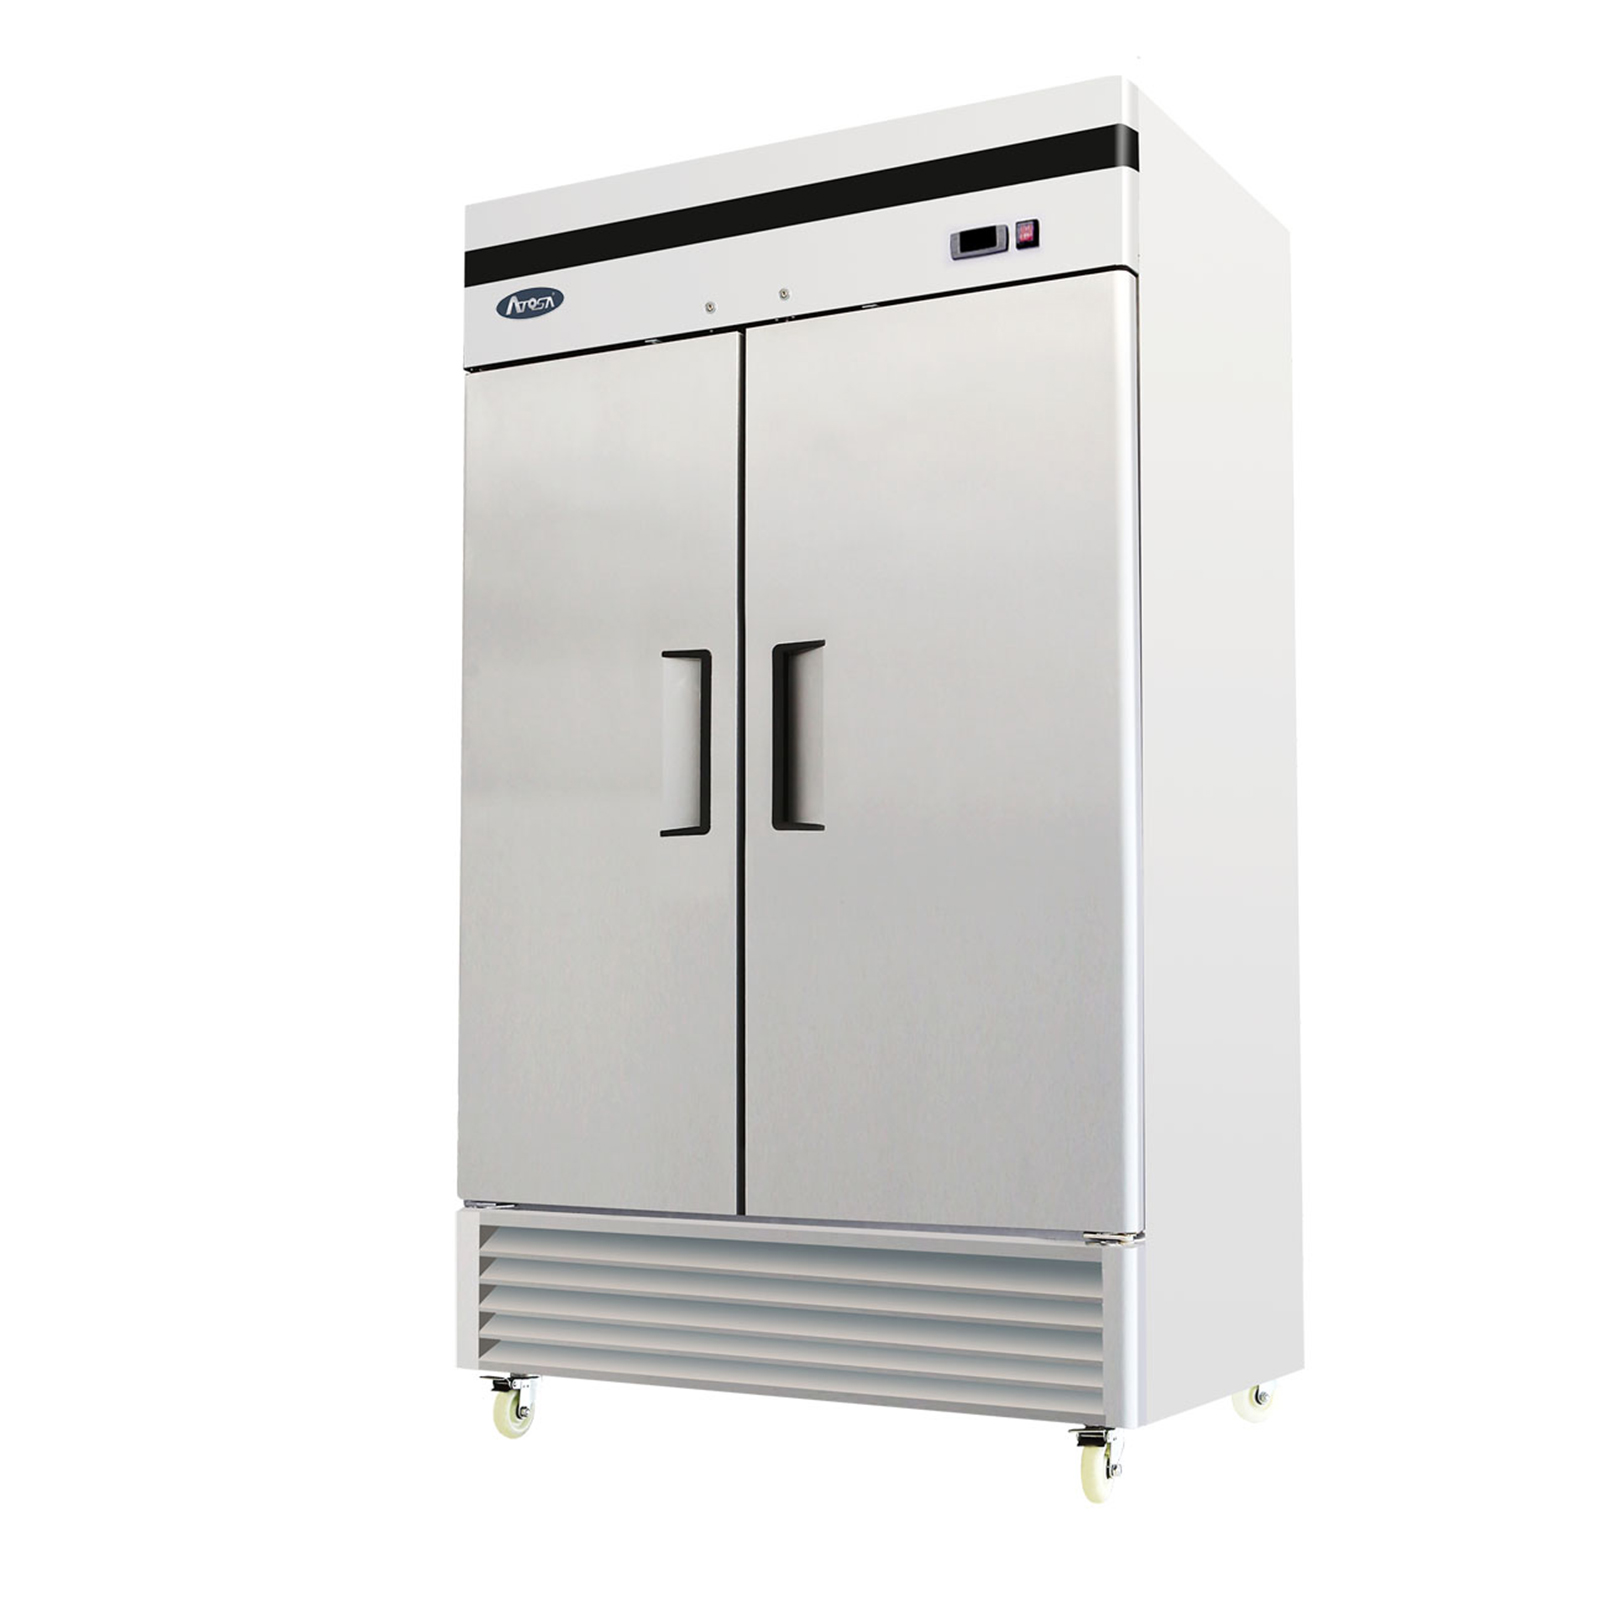 Atosa USA MBF8507GR refrigerator, reach-in